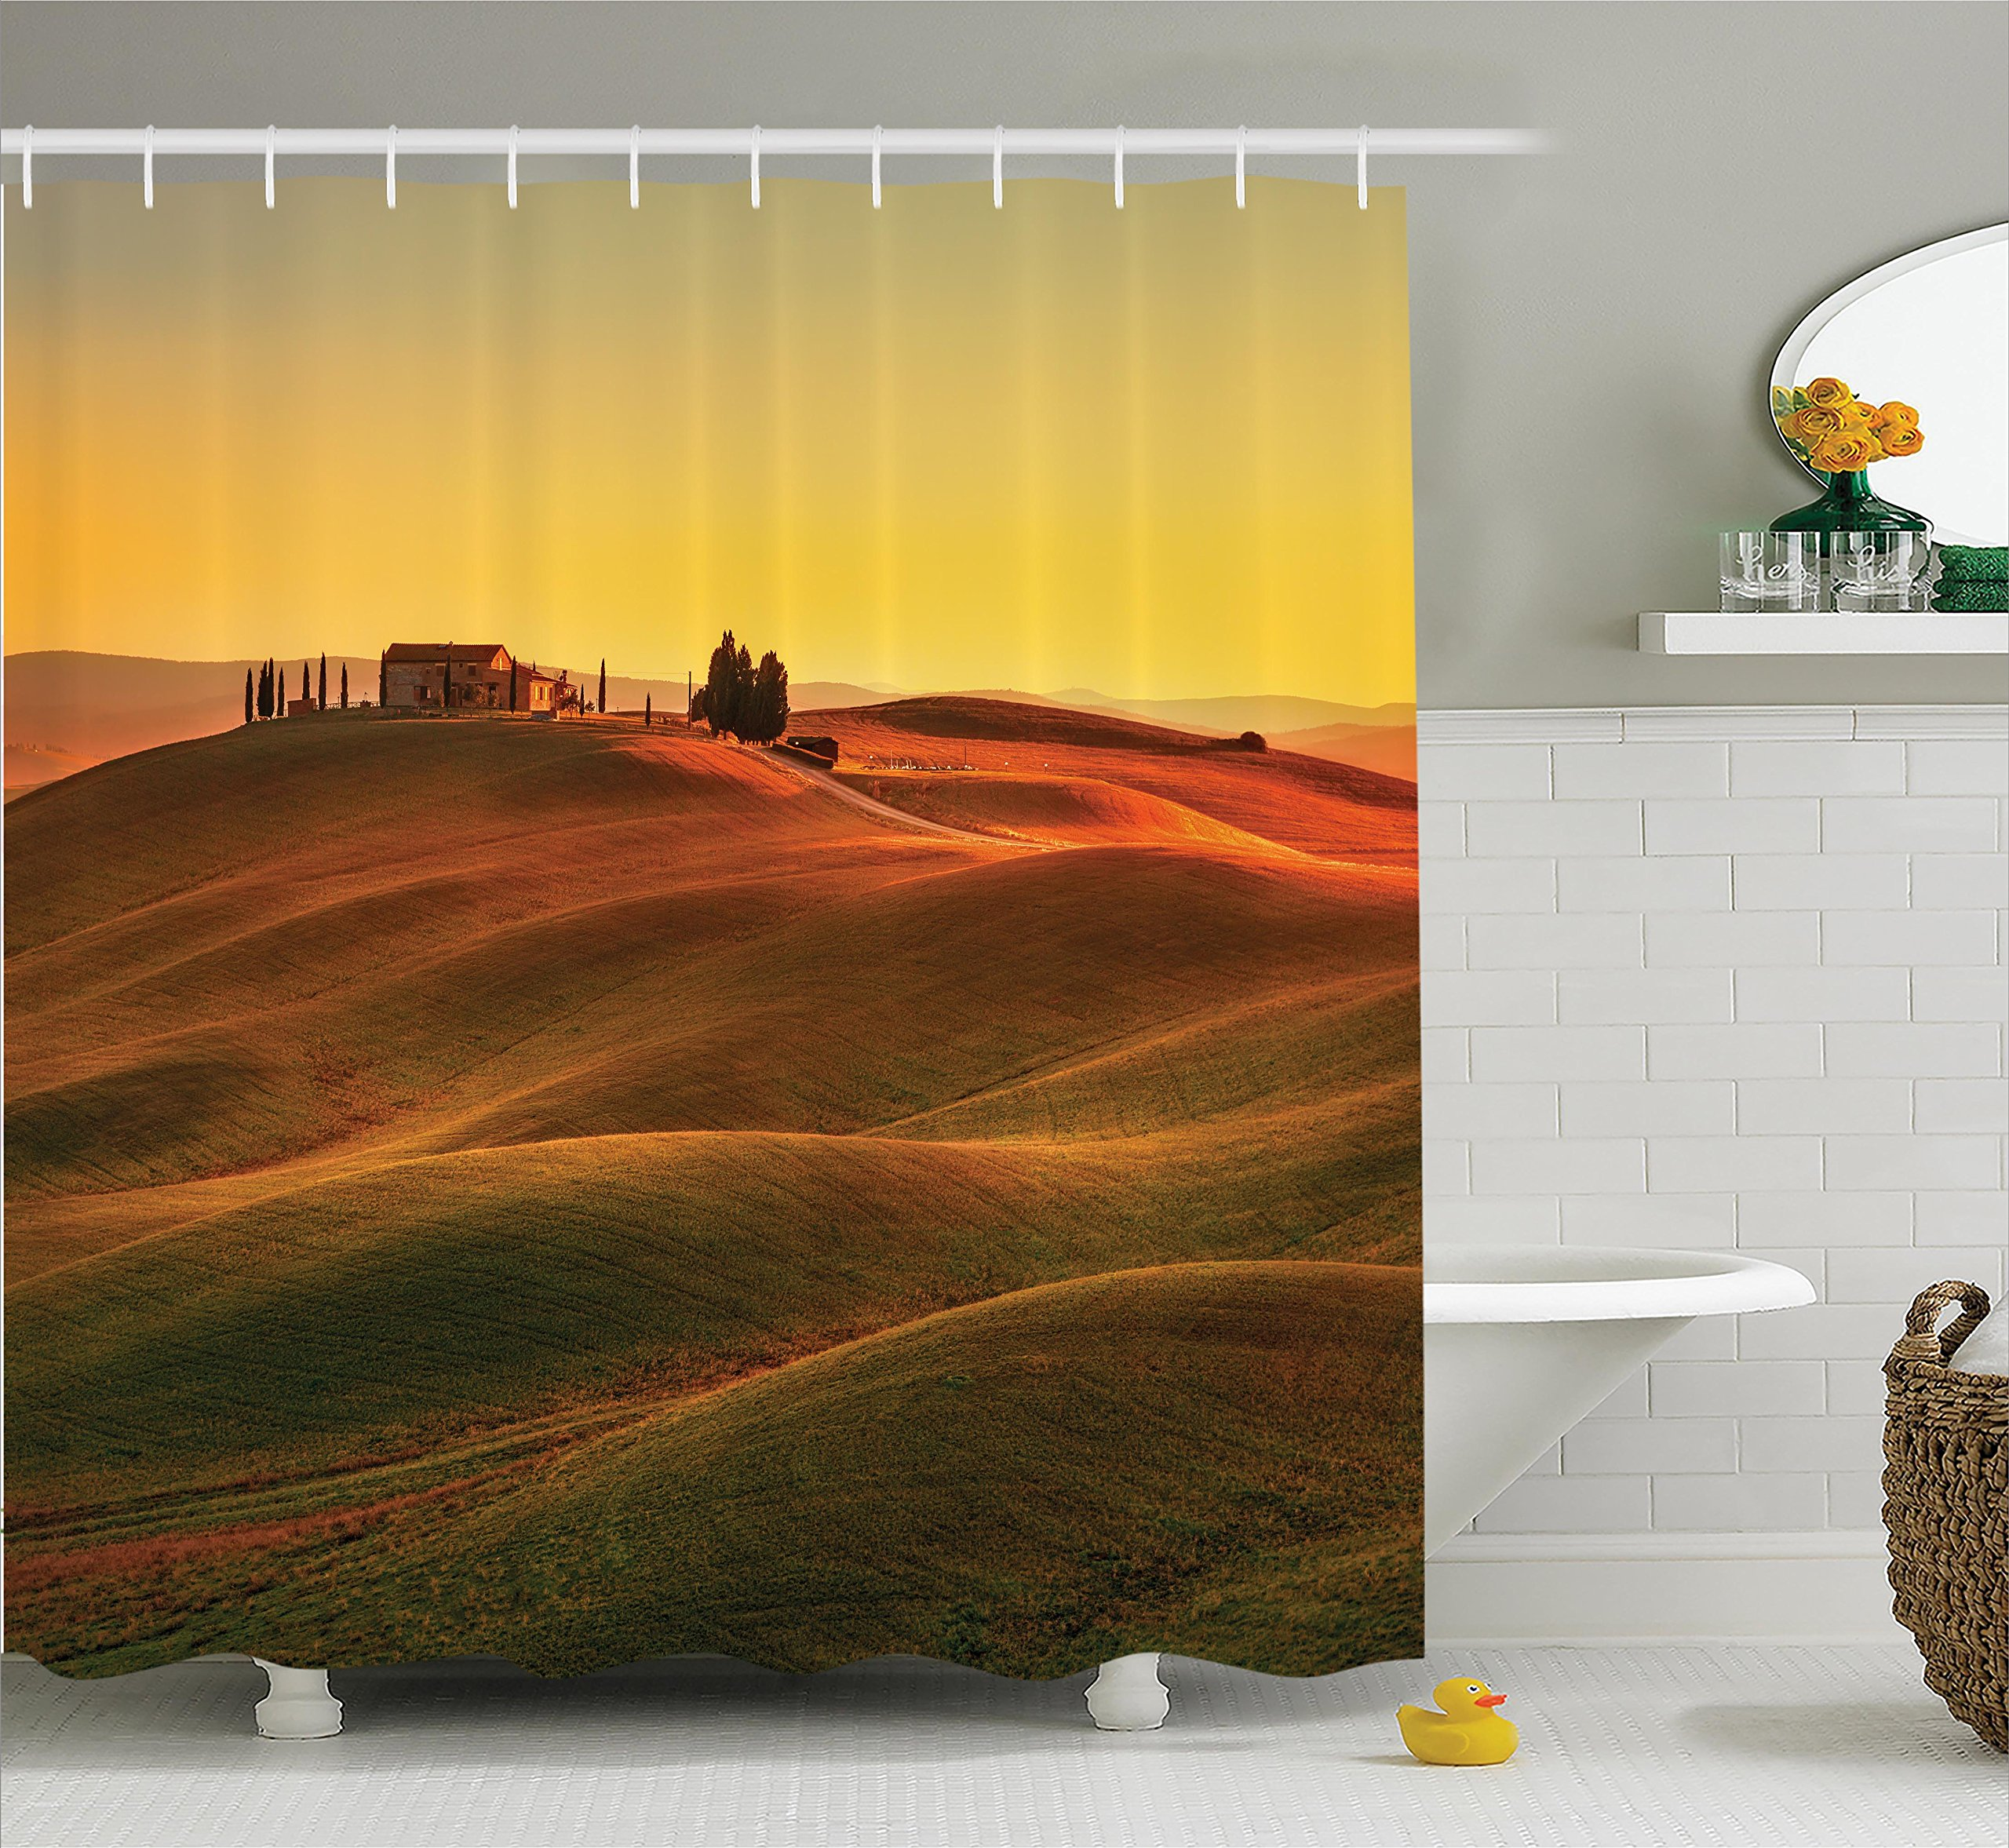 Ambesonne Tuscan Decor Shower Curtain Set, Rural Landscape of European Mediterranean Rural and Old House in Countryside Farm Print, Bathroom Accessories, 69W X 70L inches, Orange White